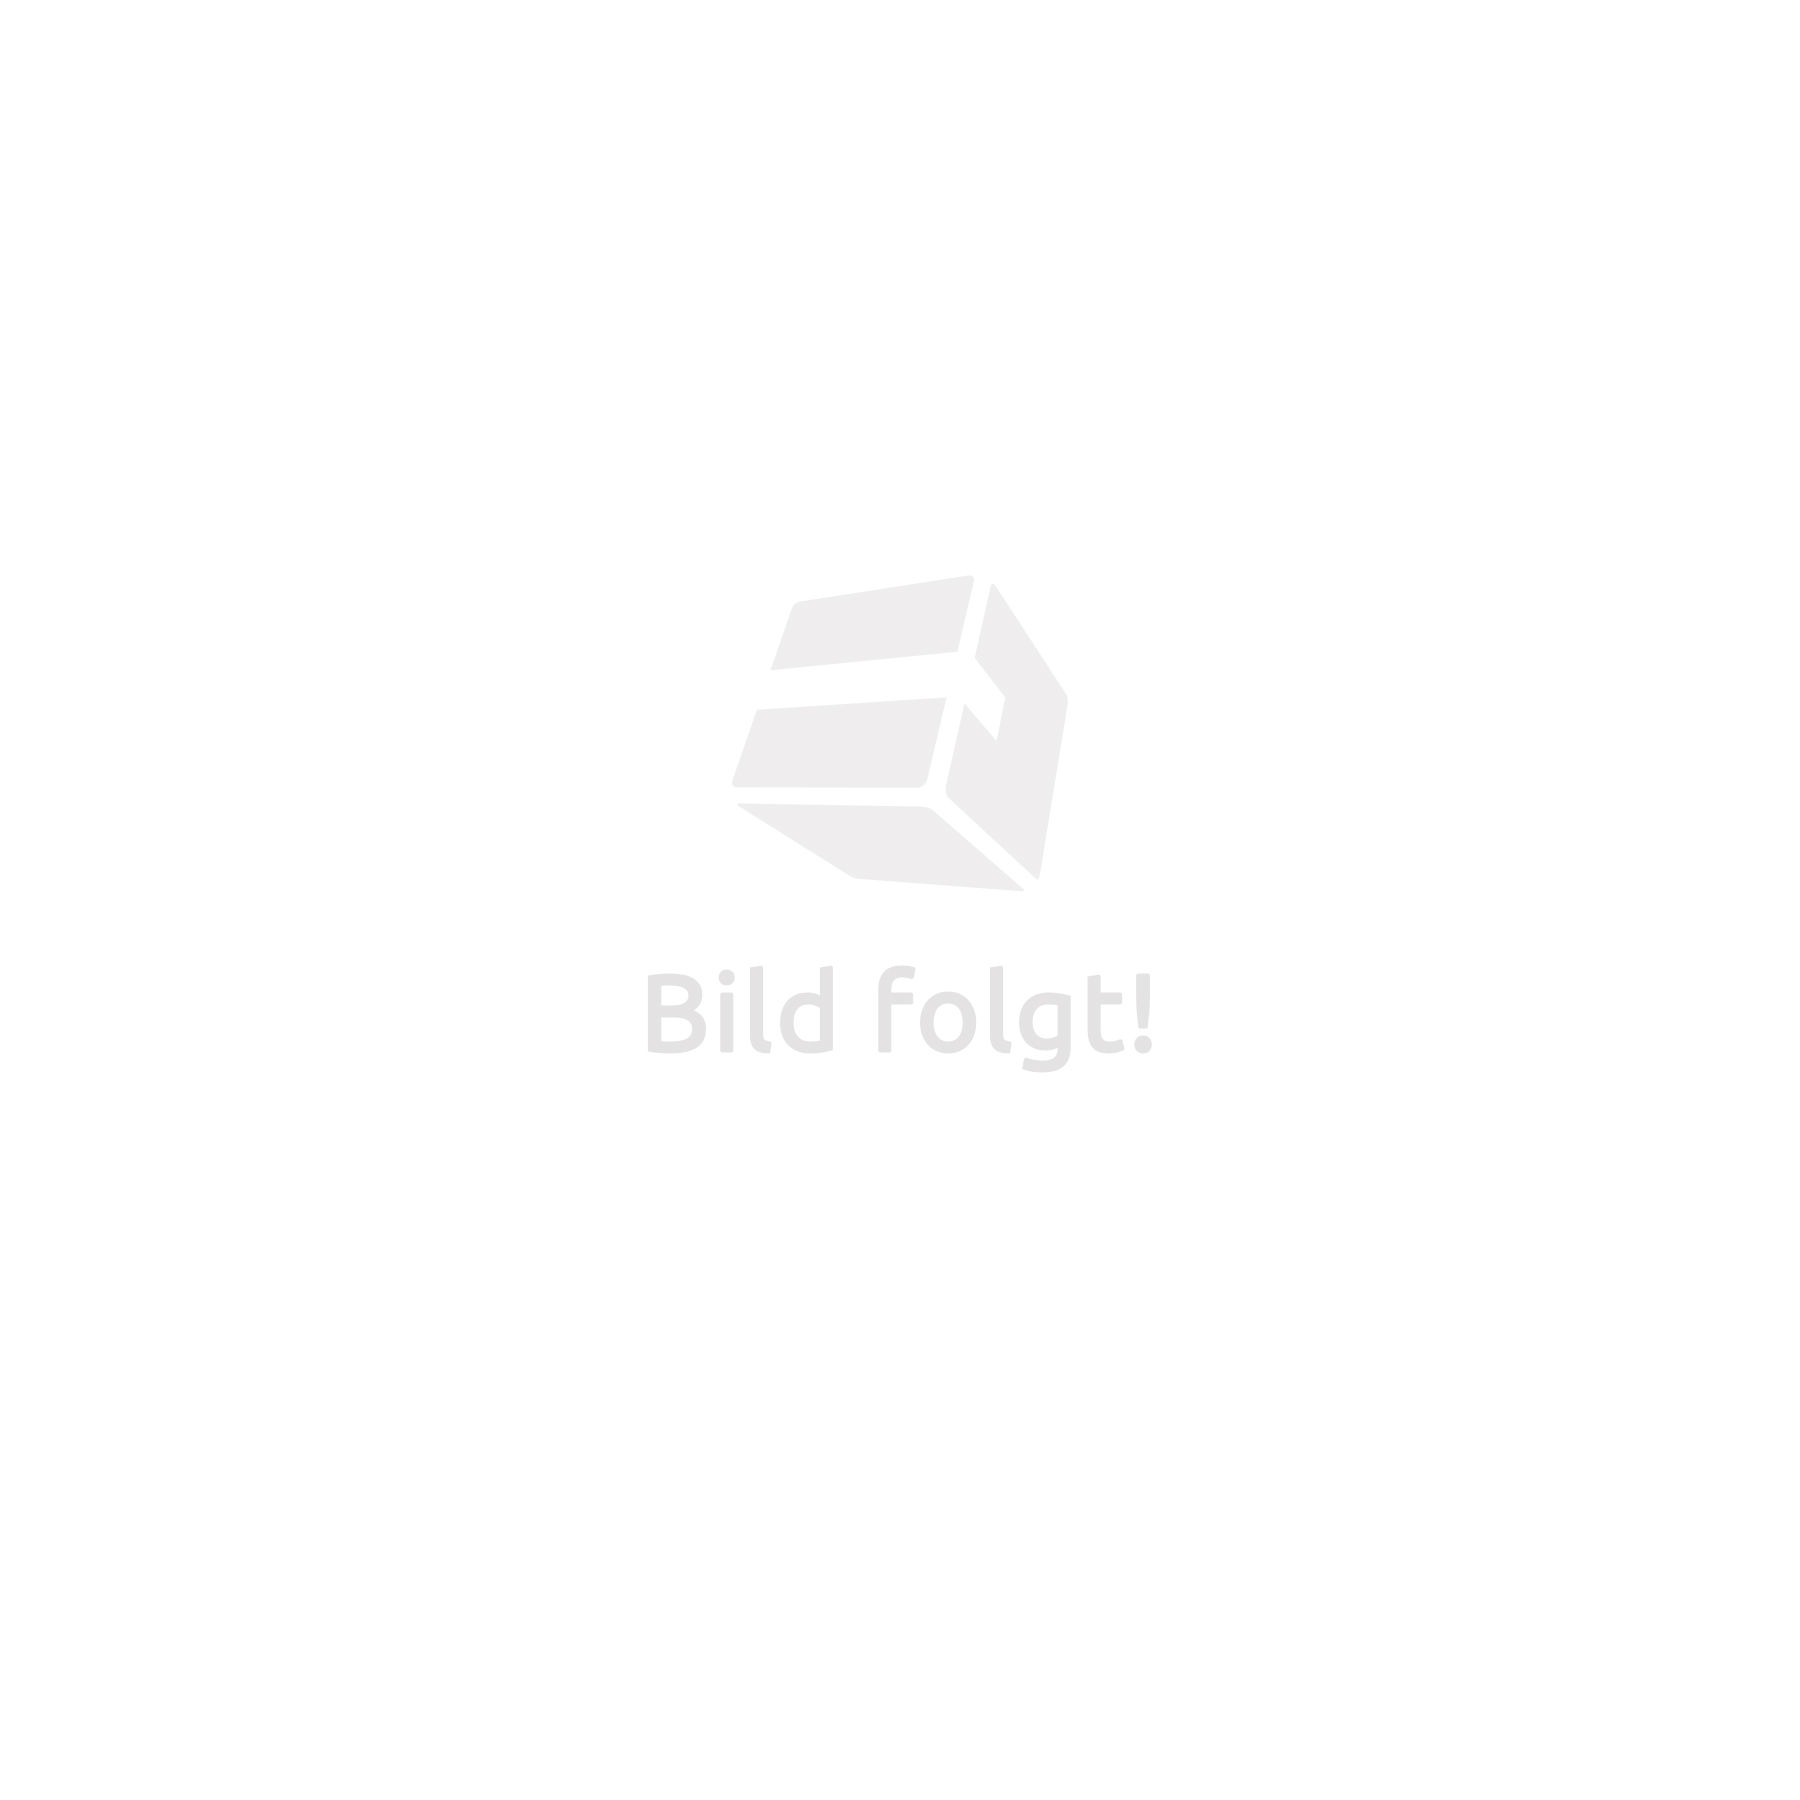 1 Chaise de Camping Pliable, Porte Boisson, Sac de transport